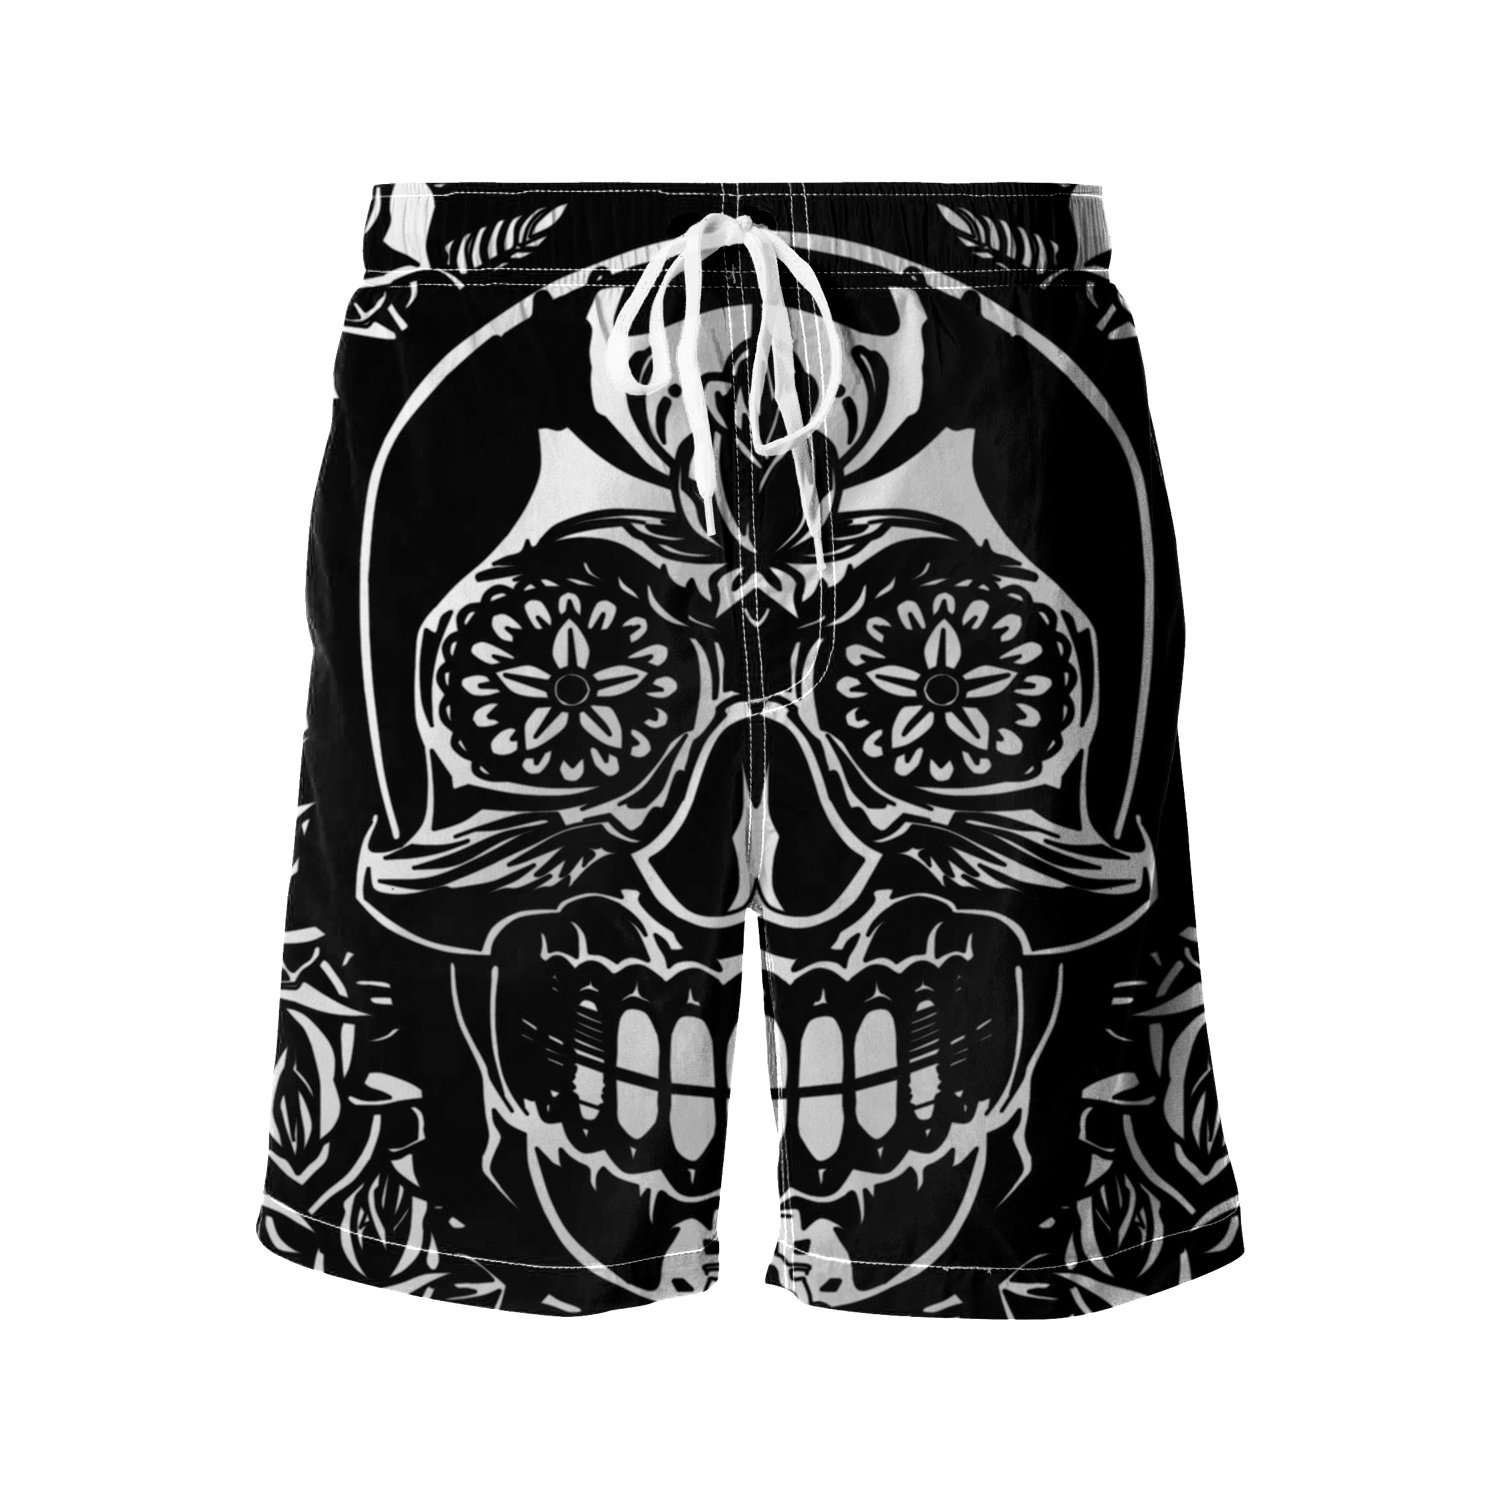 GOEYES Mens Beach Shorts Slim Gym Shorts Quick Dry Athletic Shorts Watershorts Black and White Floral Decor Day of The Dead Mexic